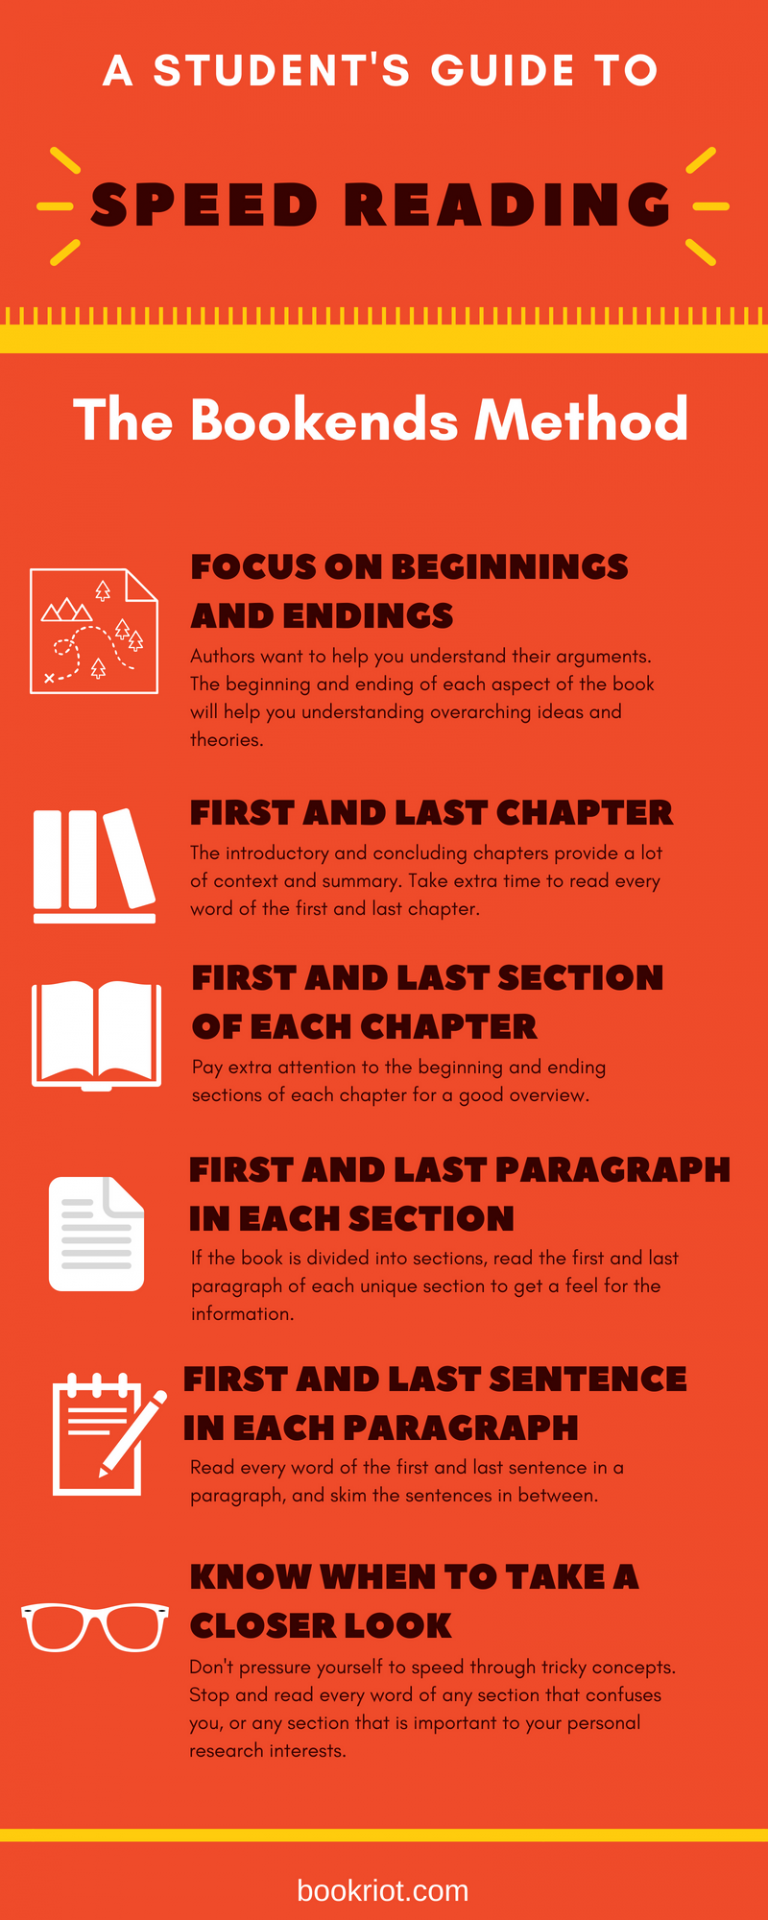 How To Read Faster A Student S Guide To Speed Reading How To Read Faster Speed Reading Study Tips College